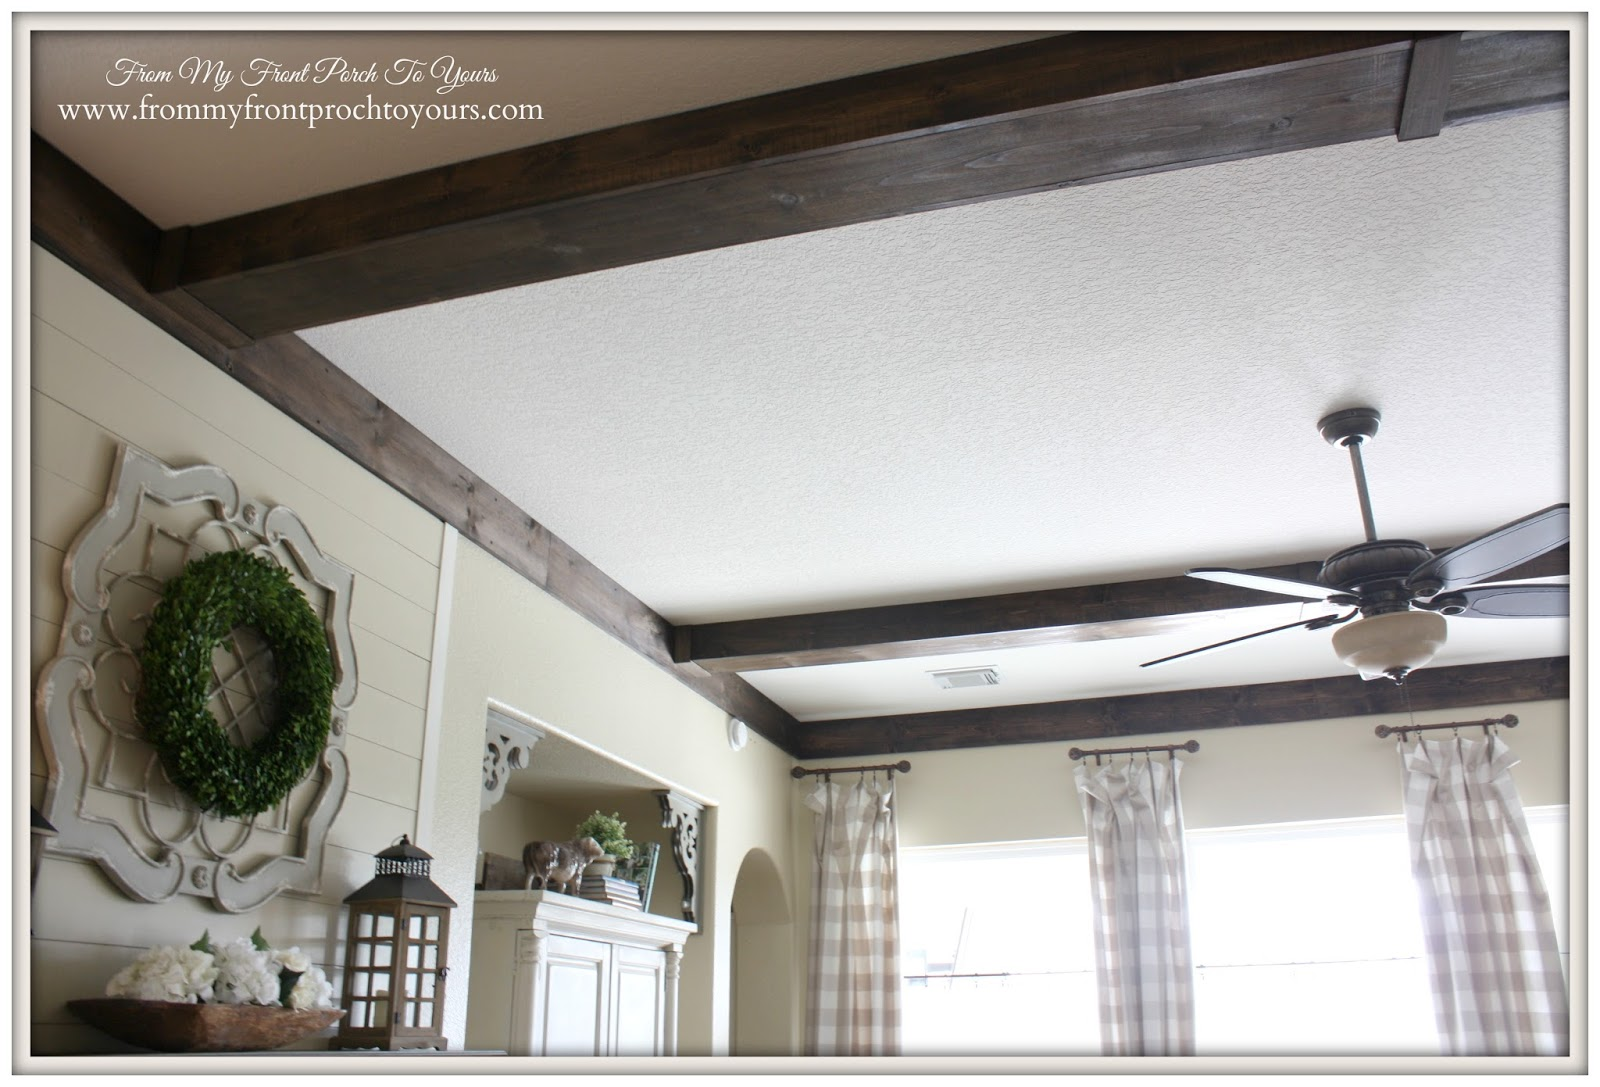 Wood beams for our french farmhouse living room at From My Front Porch To Yours.